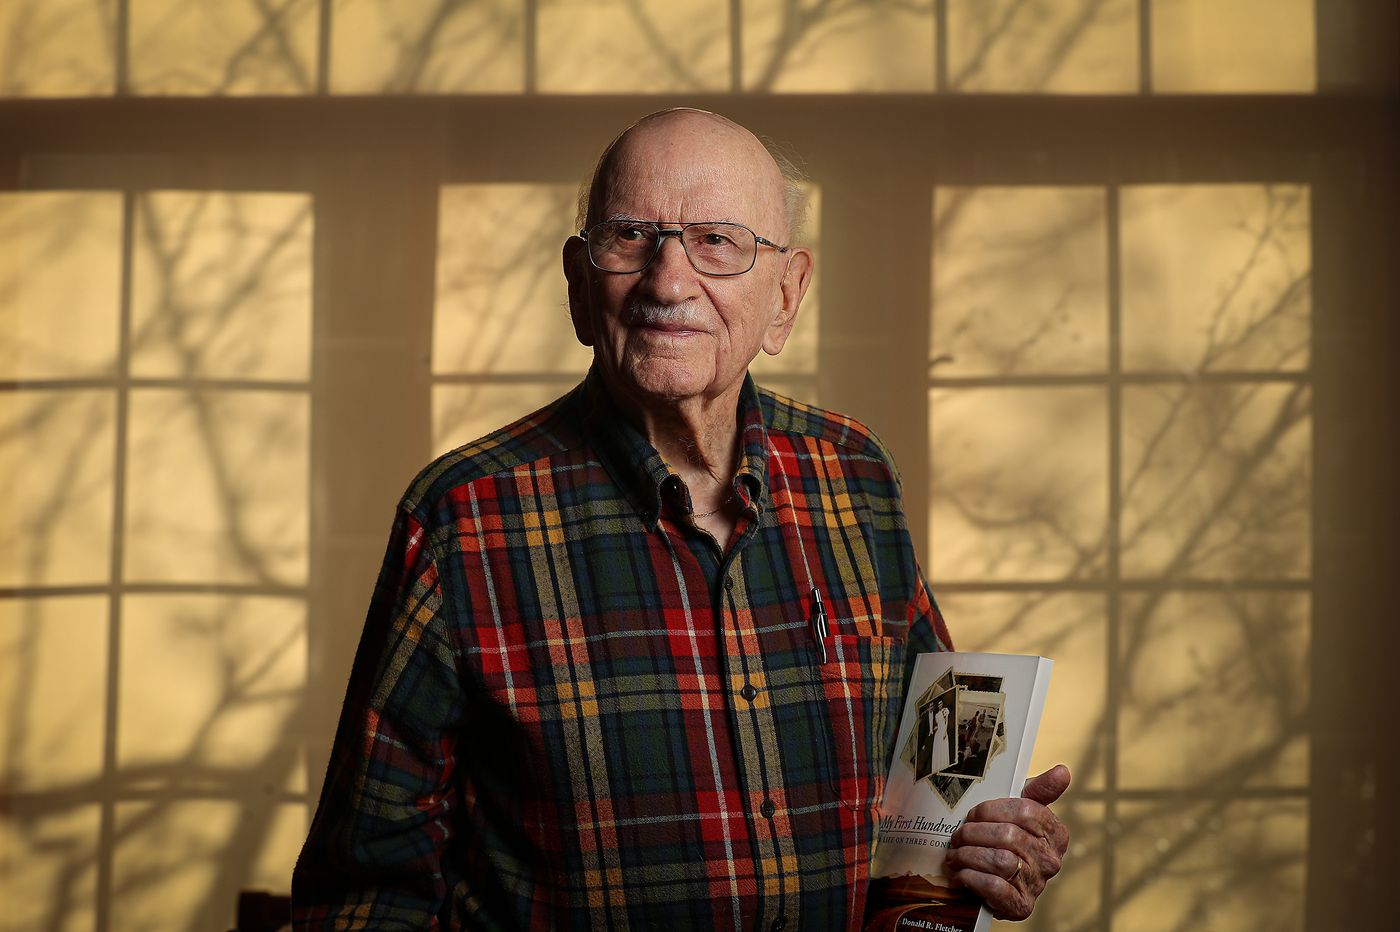 At 101, this South Jersey preacher-turned-author has plenty of new chapters